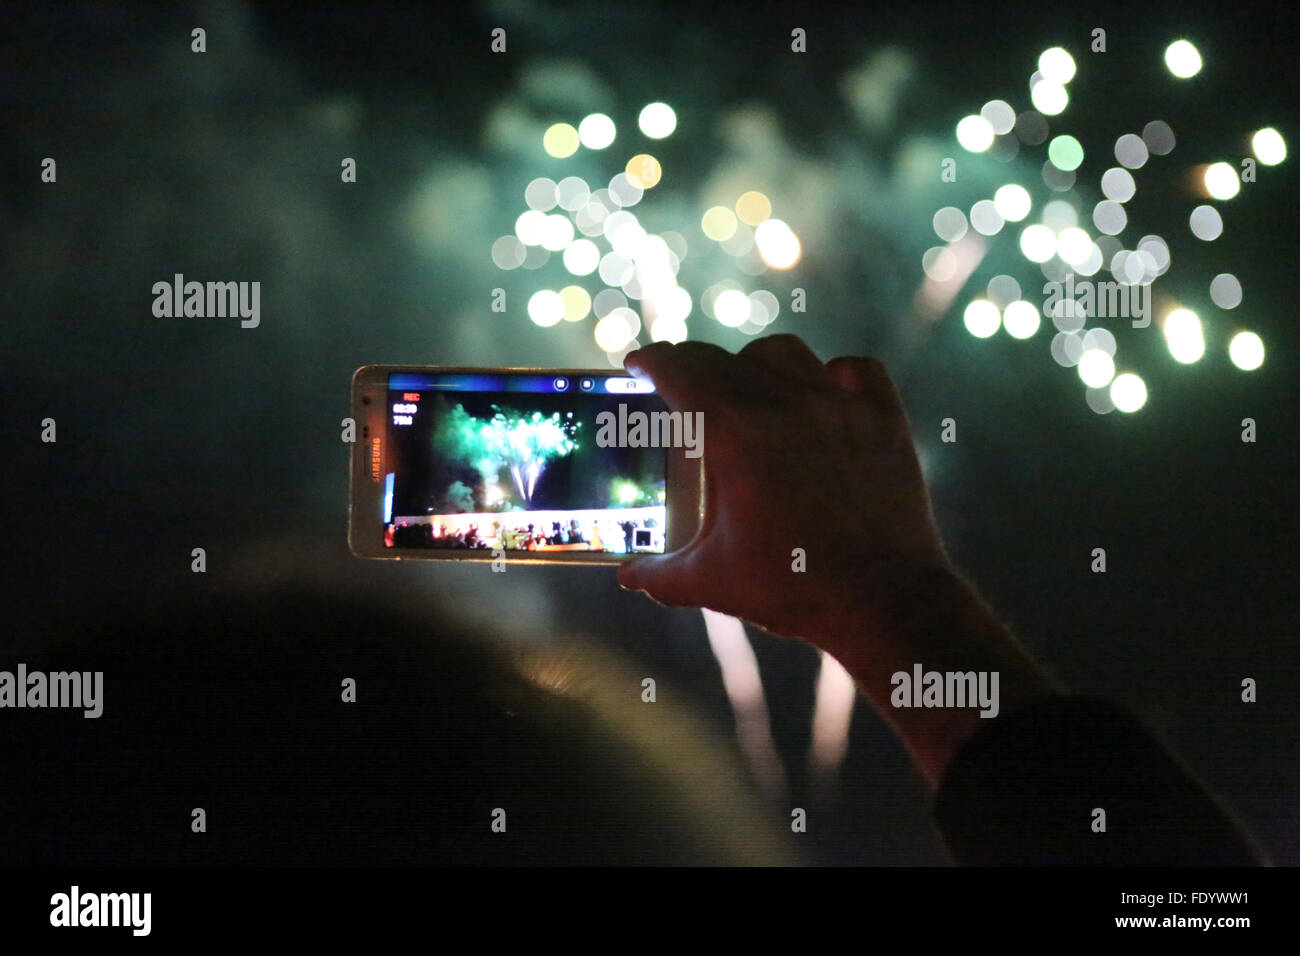 Dubai, United Arab Emirates, fireworks is photographed with a smartphone - Stock Image